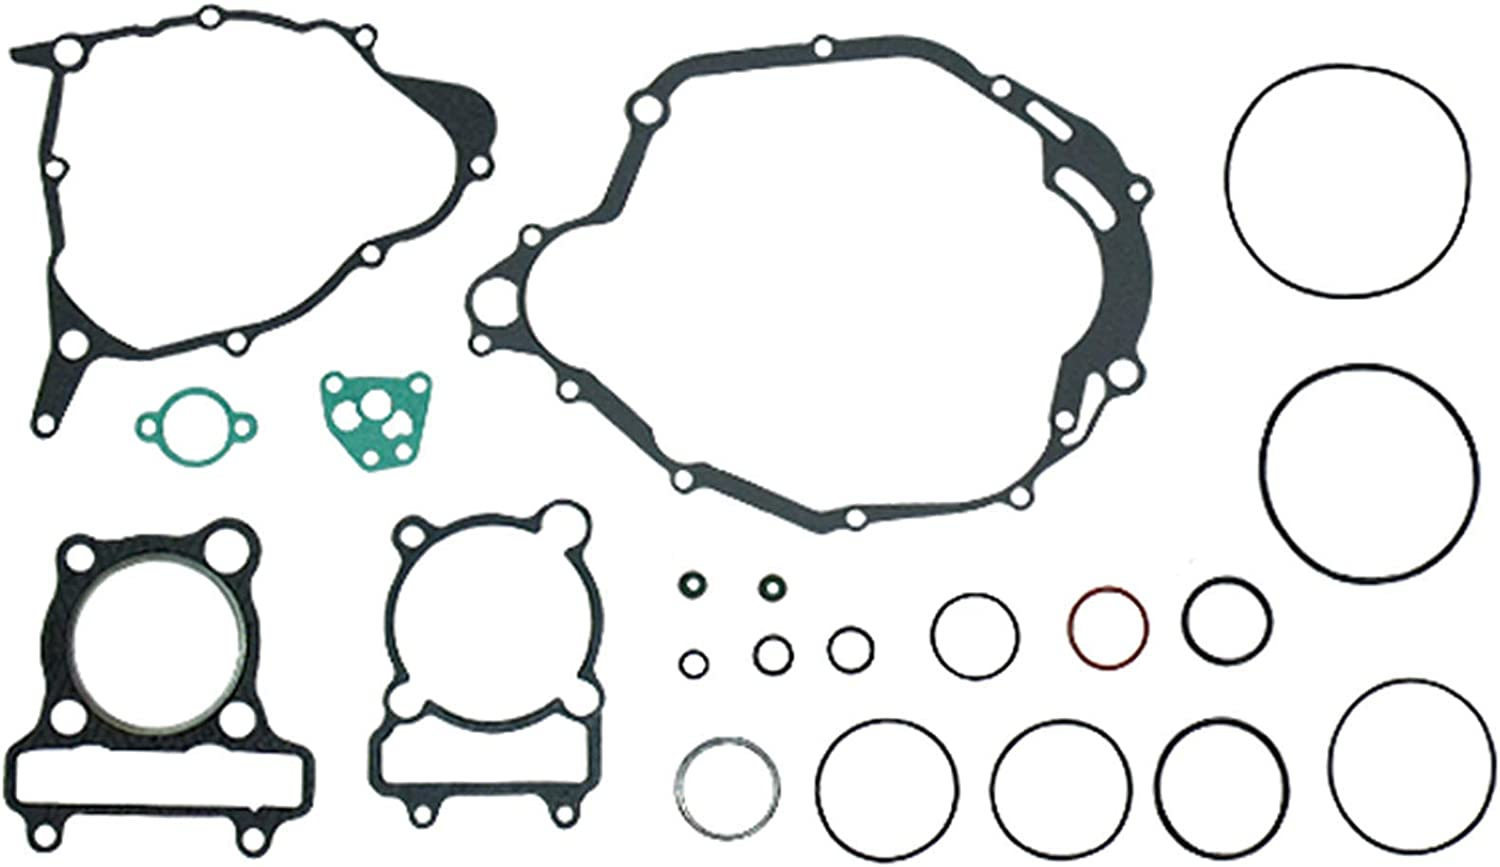 Complete Gasket Kit Fits 2003 XT225 Yamaha Selling and selling Sale price